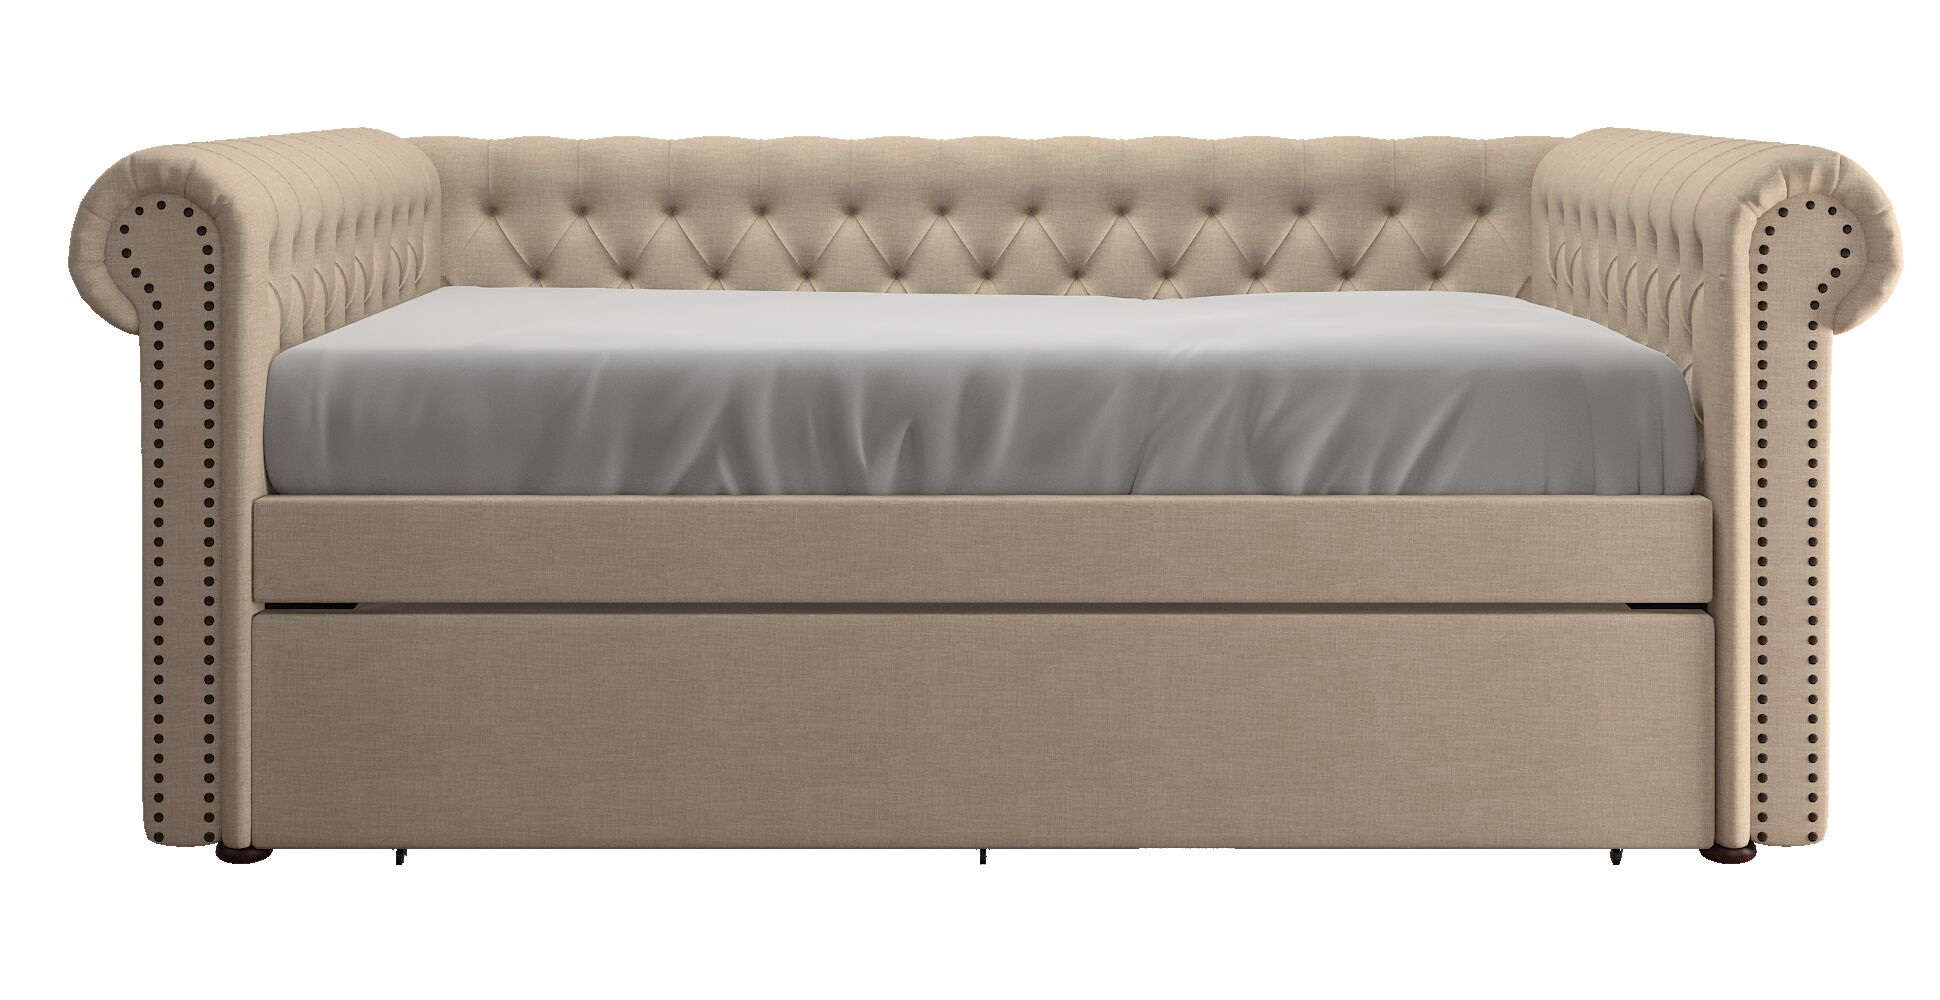 Full Gowans Button Tufted Linen Daybed Color: Beige